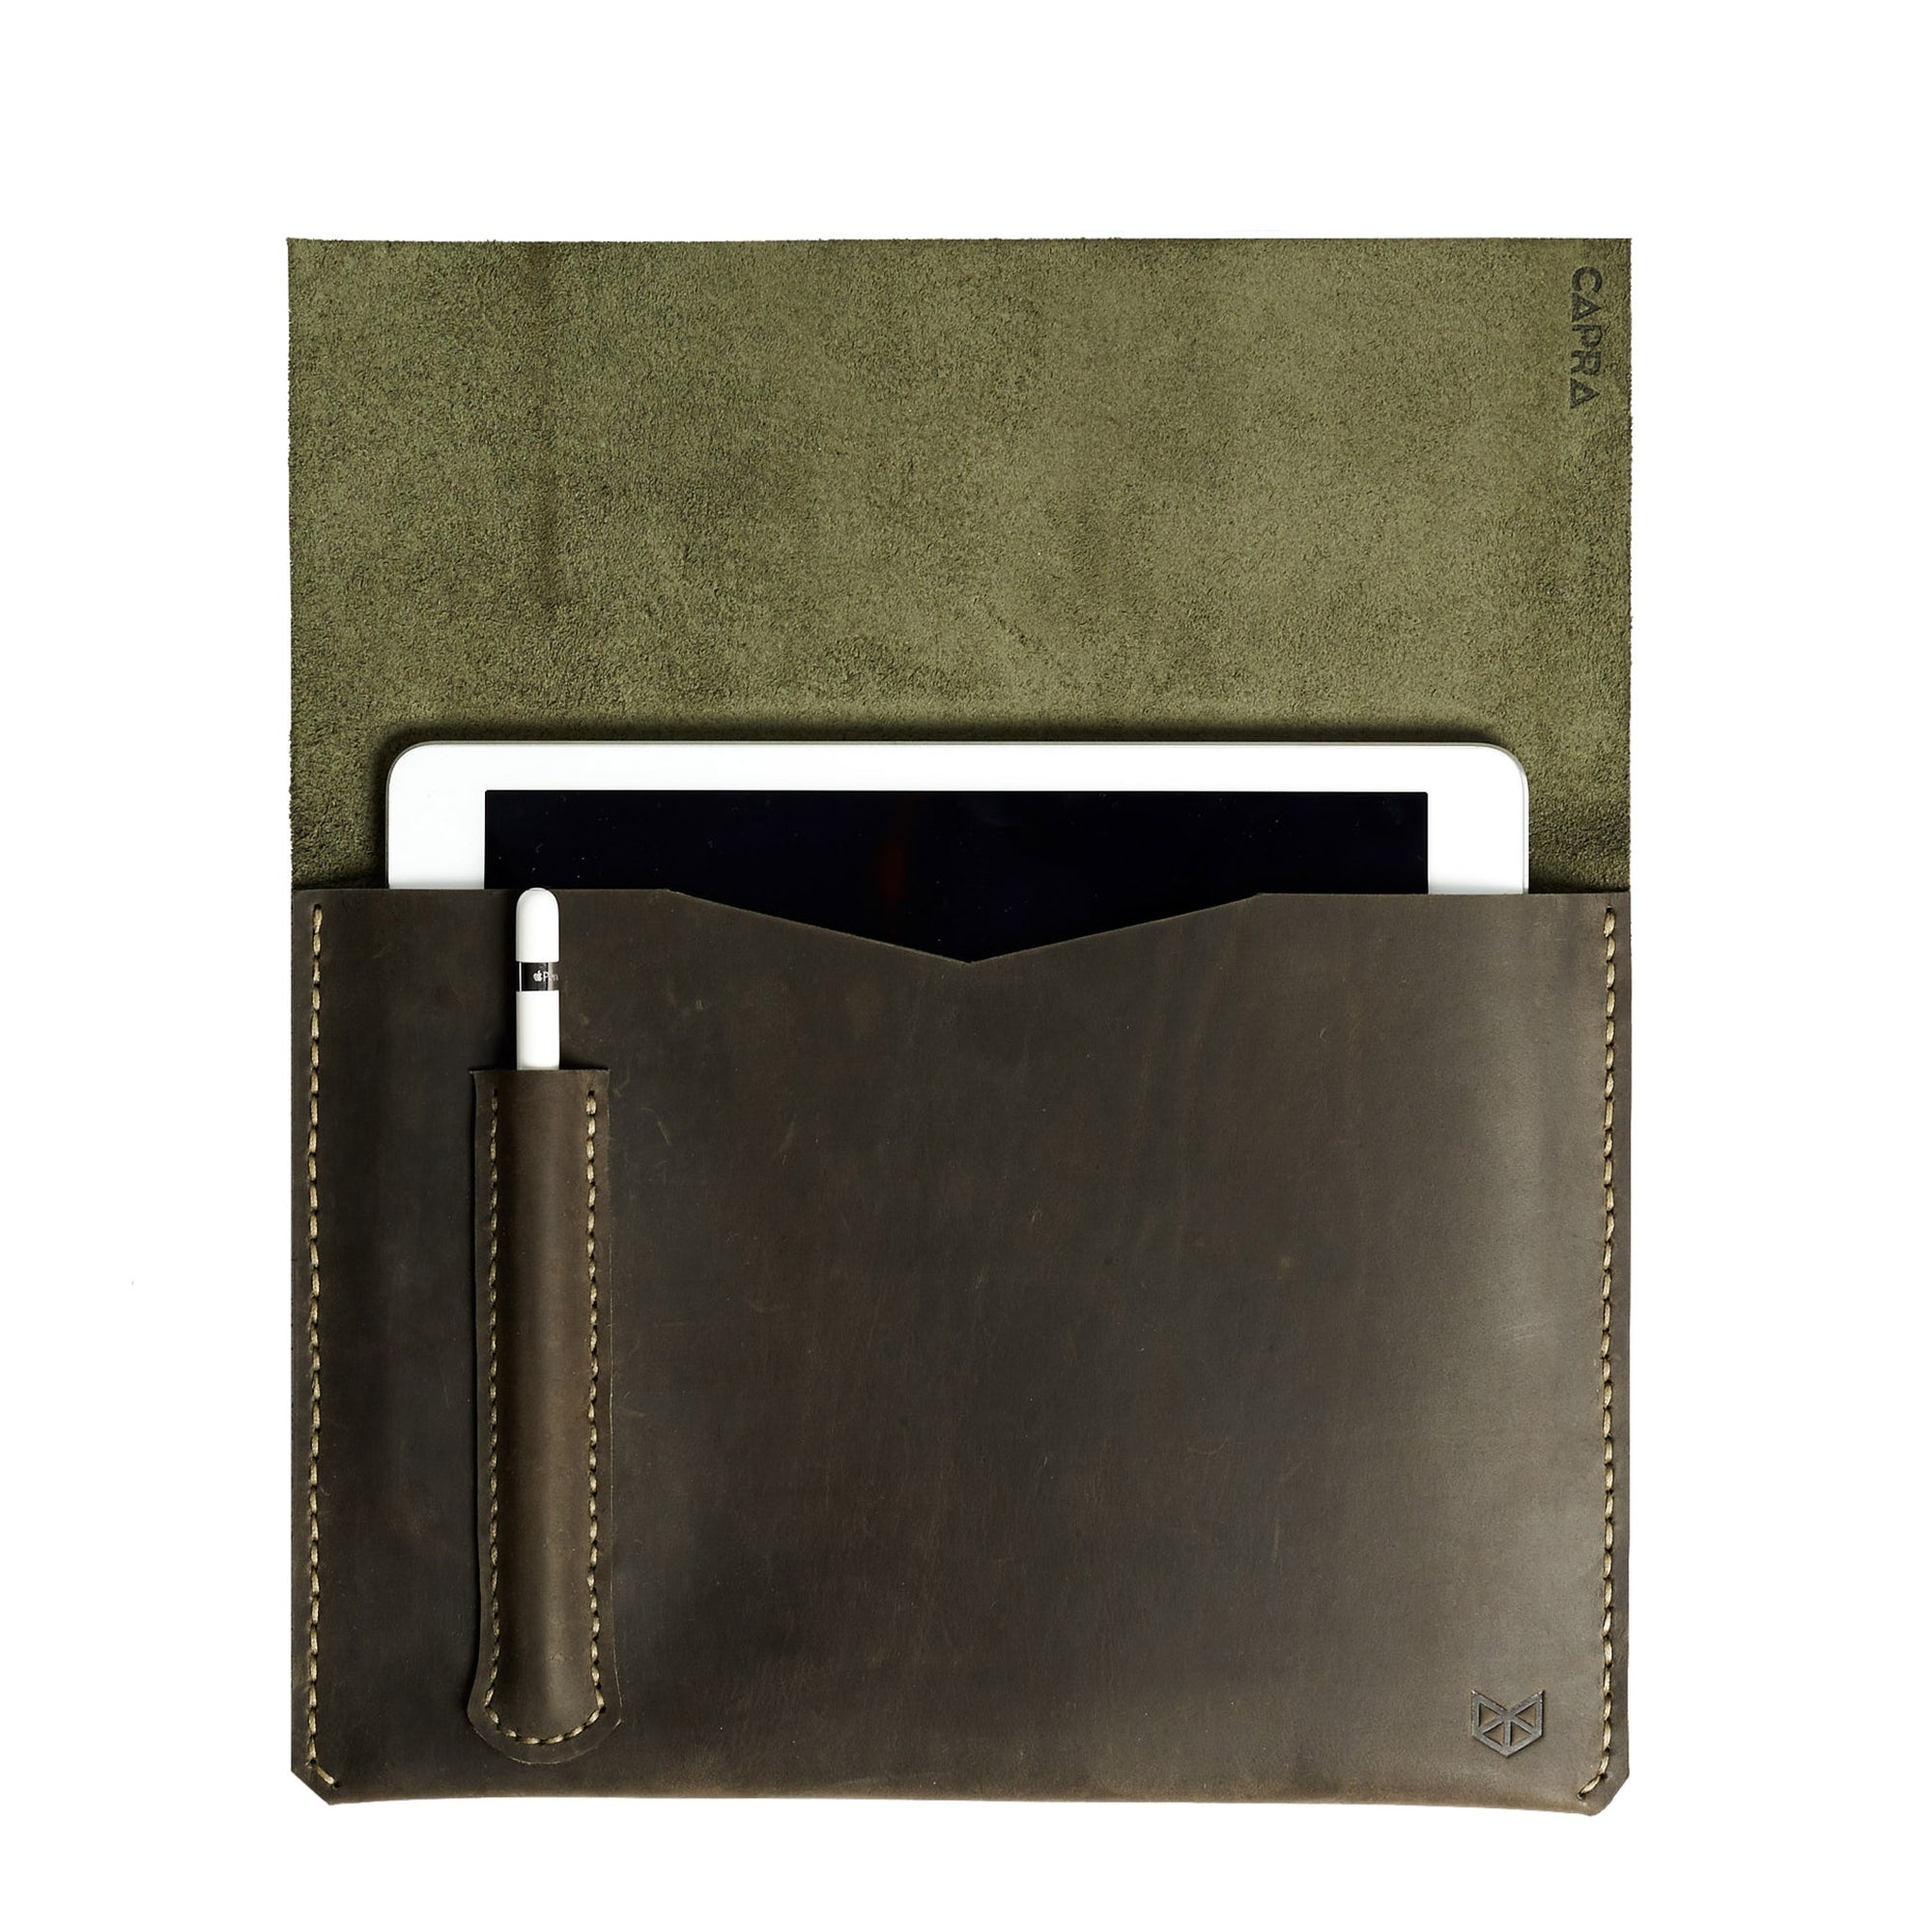 Green iPad pro leather sleeve with apple pencil holder